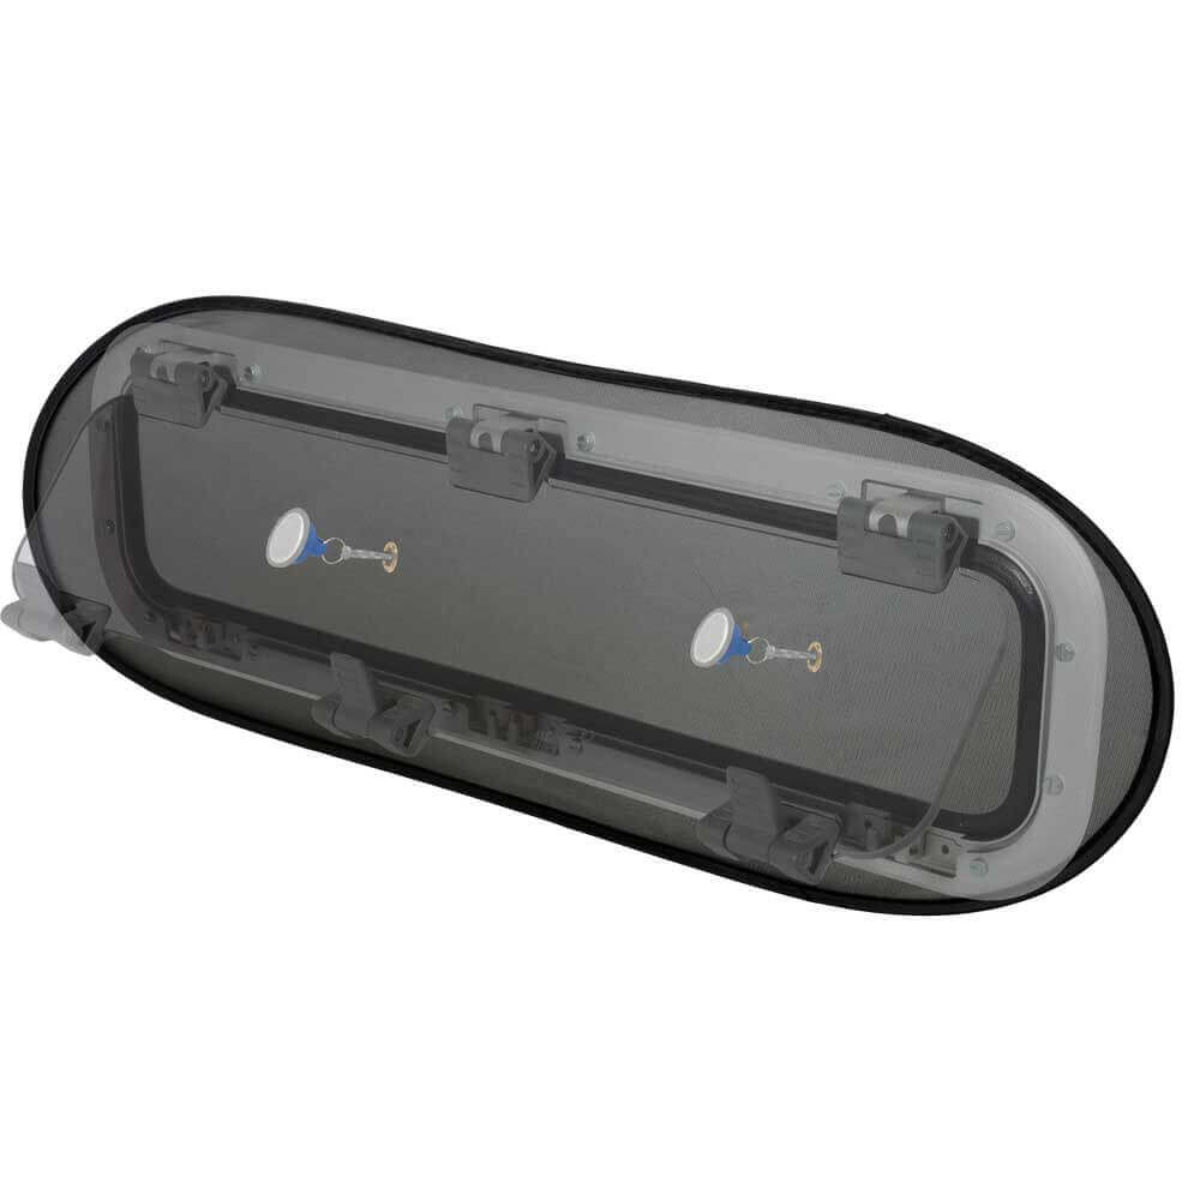 Mounts from the Inside with Magnet 2-pack. Bug Screens for Boat Portlights//windows by Waterline Design Art nr 1430 Mosquito Net in Universal Size Fits all Brands